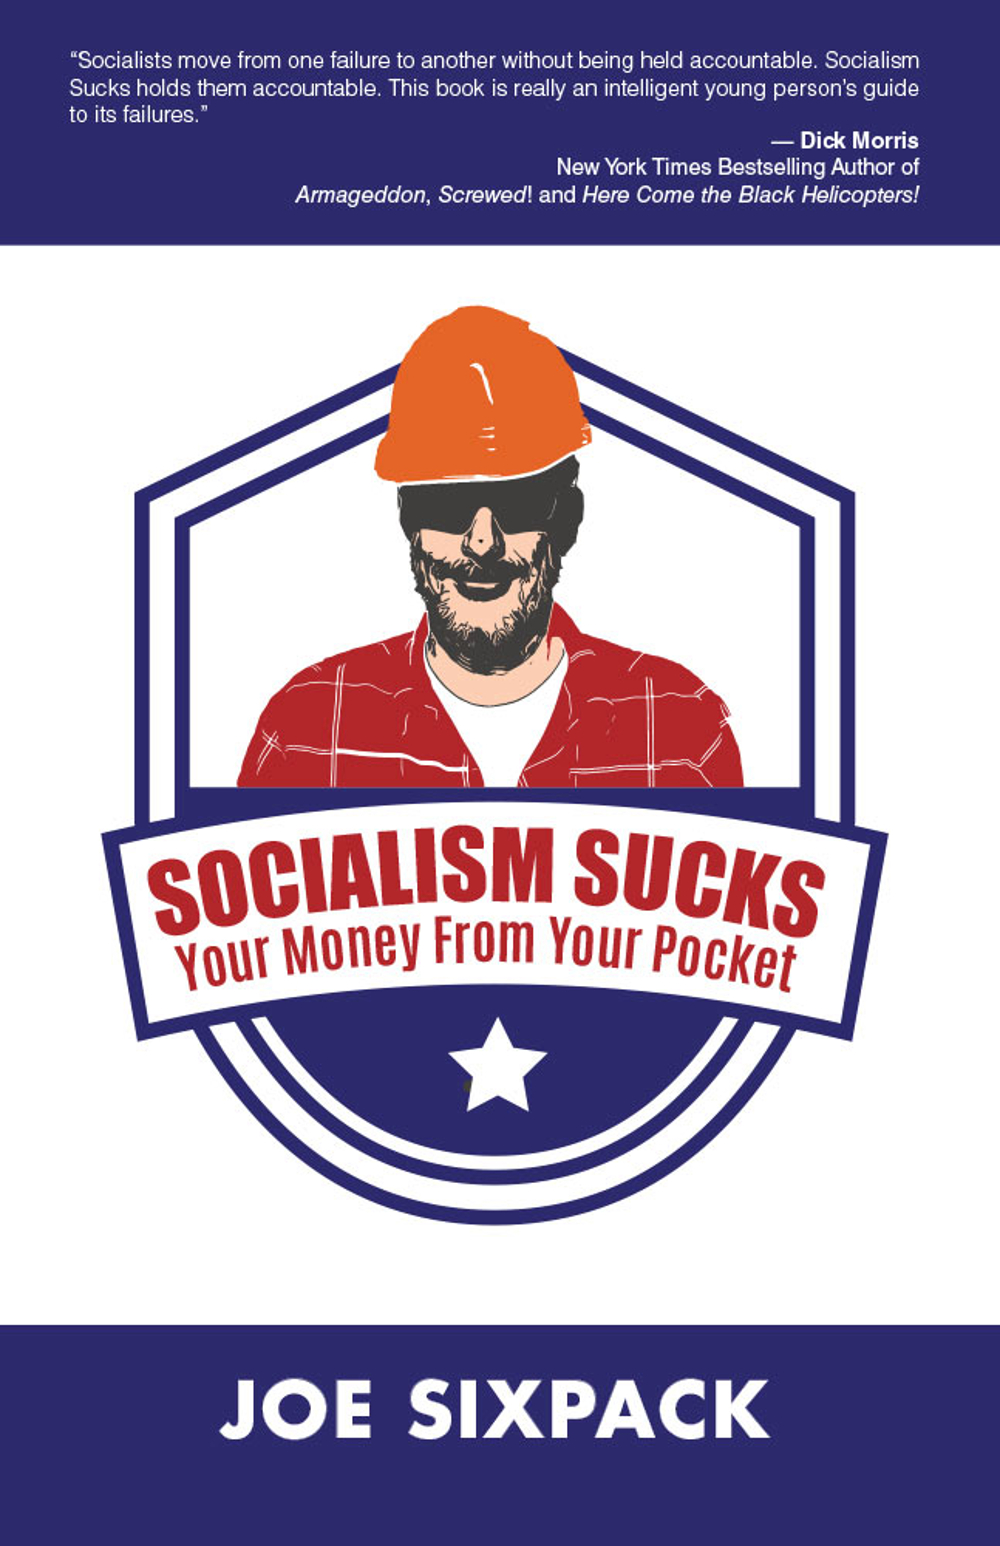 Socialism Sucks Your Money From Your Pocket